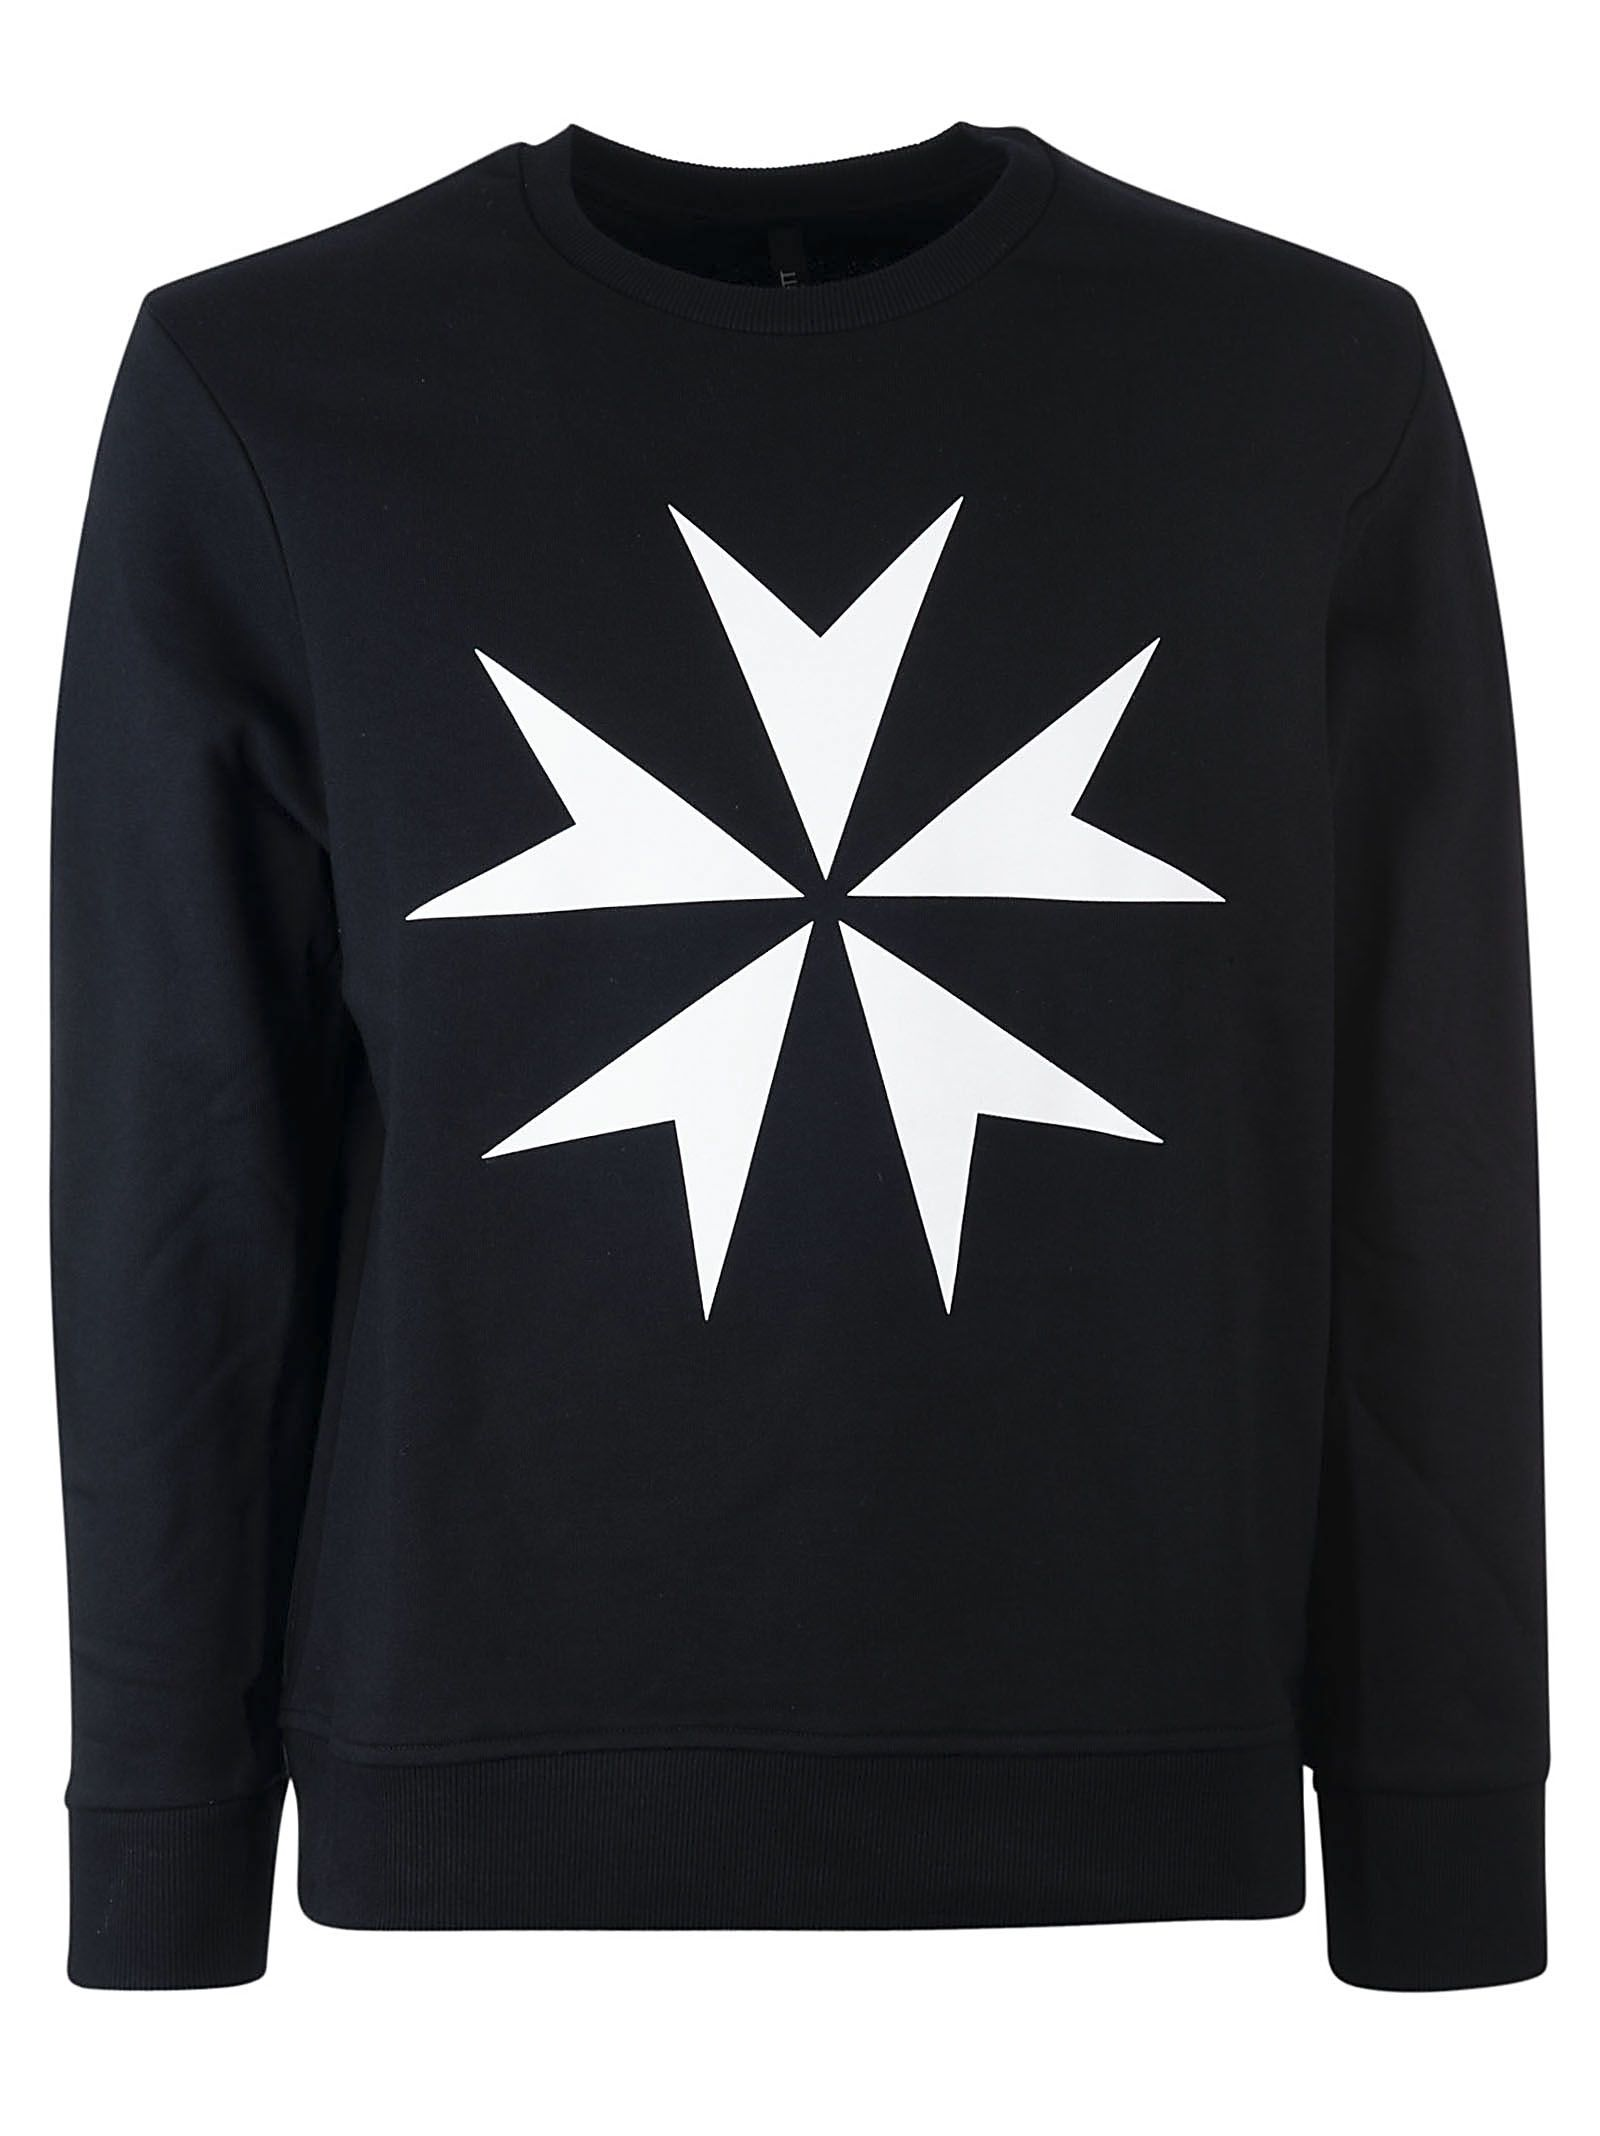 Neil Barrett Military Star Sweatshirt